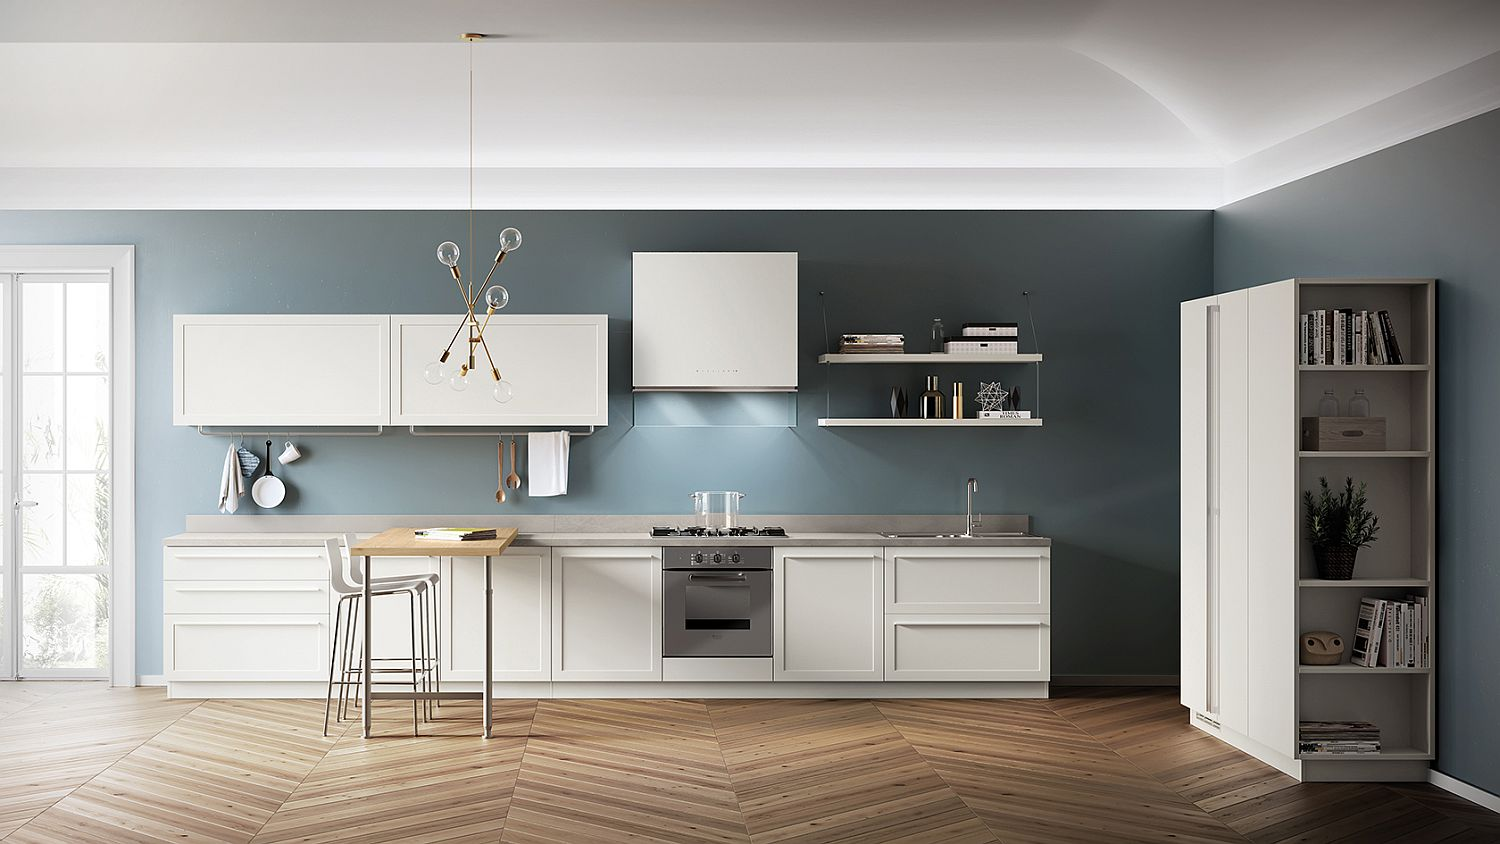 Carattere: Classical-Contemporary Kitchen Blends Sophistication with Ease